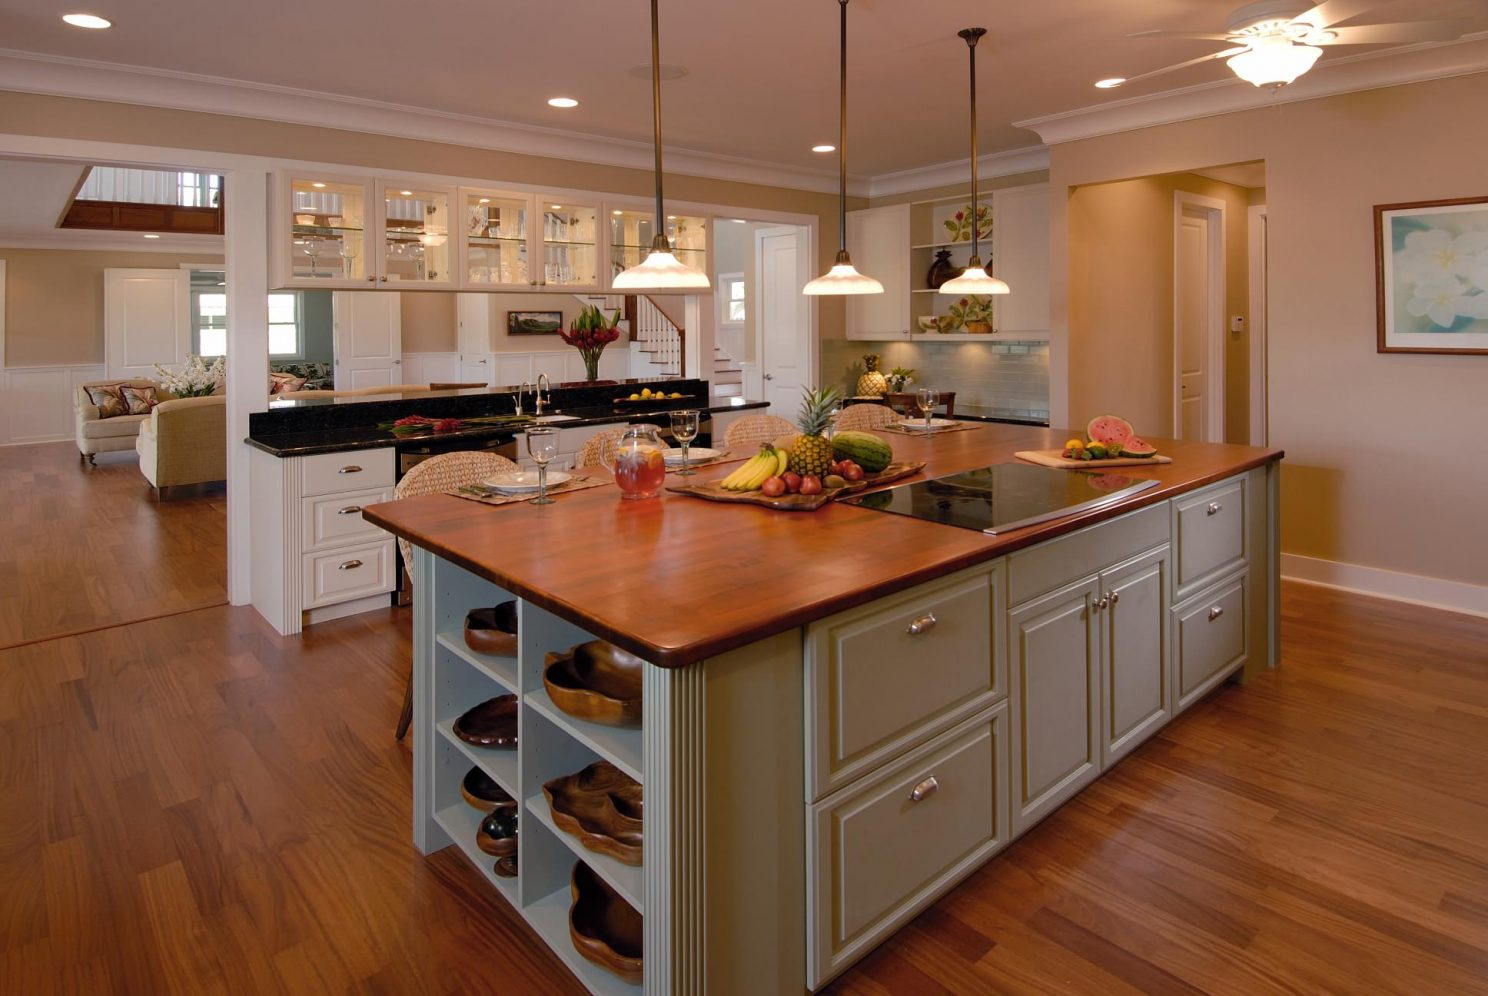 Photos Of Kitchen Islands Kitchen Island Co